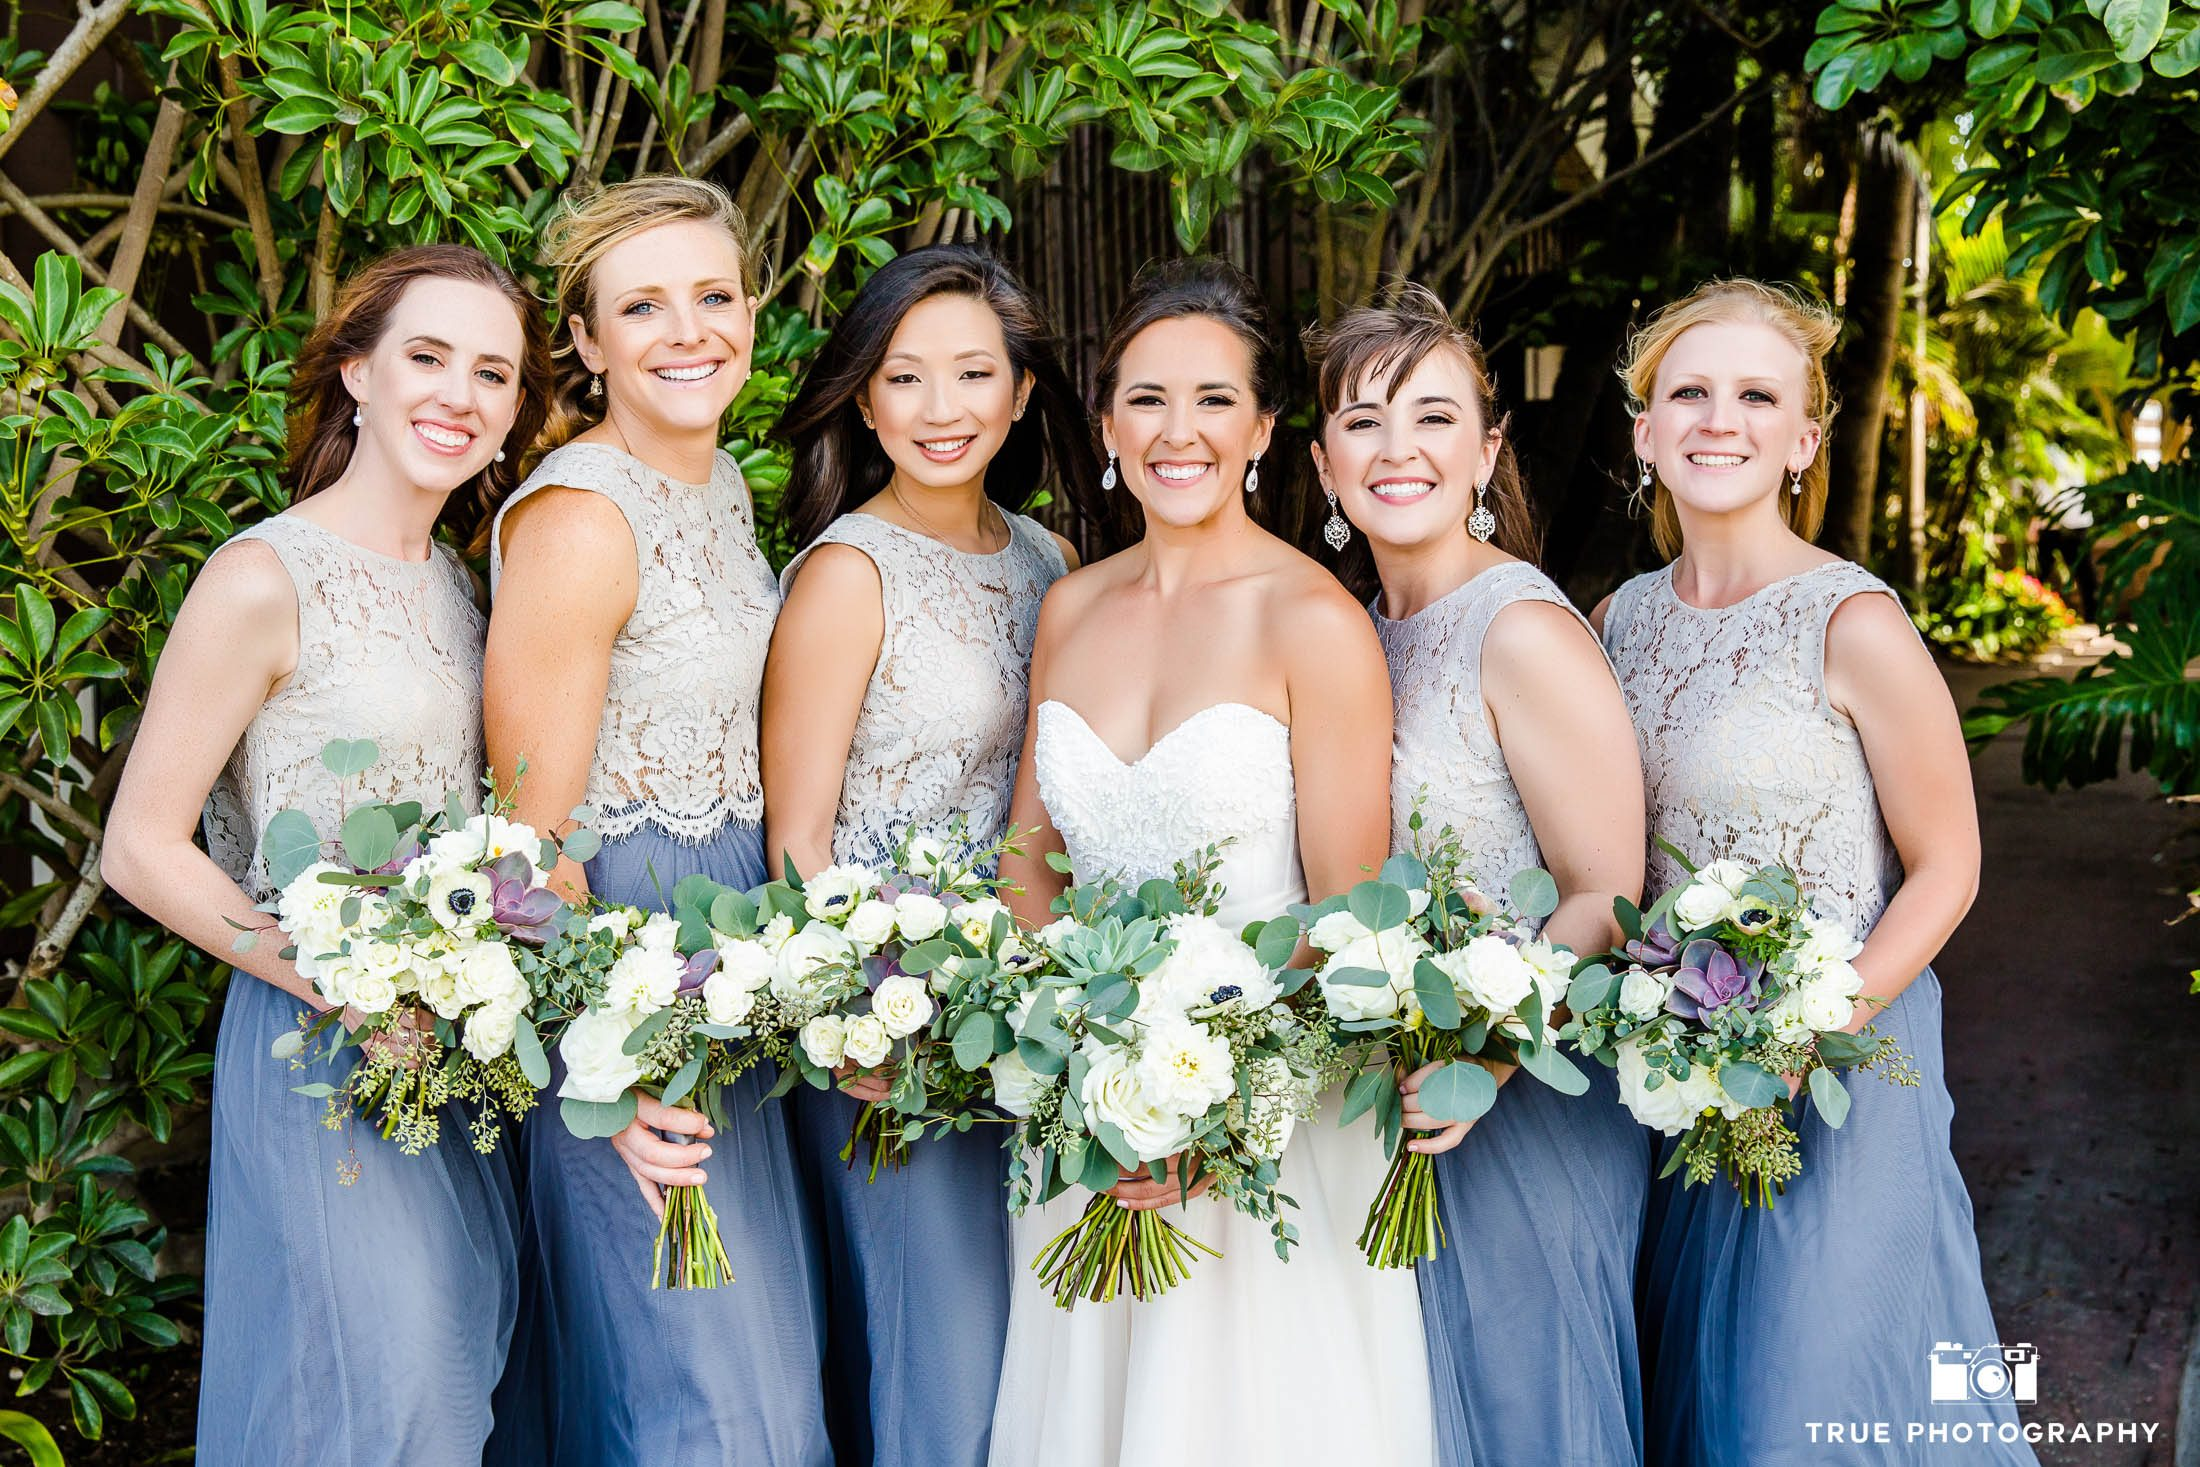 Bridesmaids in two-piece dresses with Bride